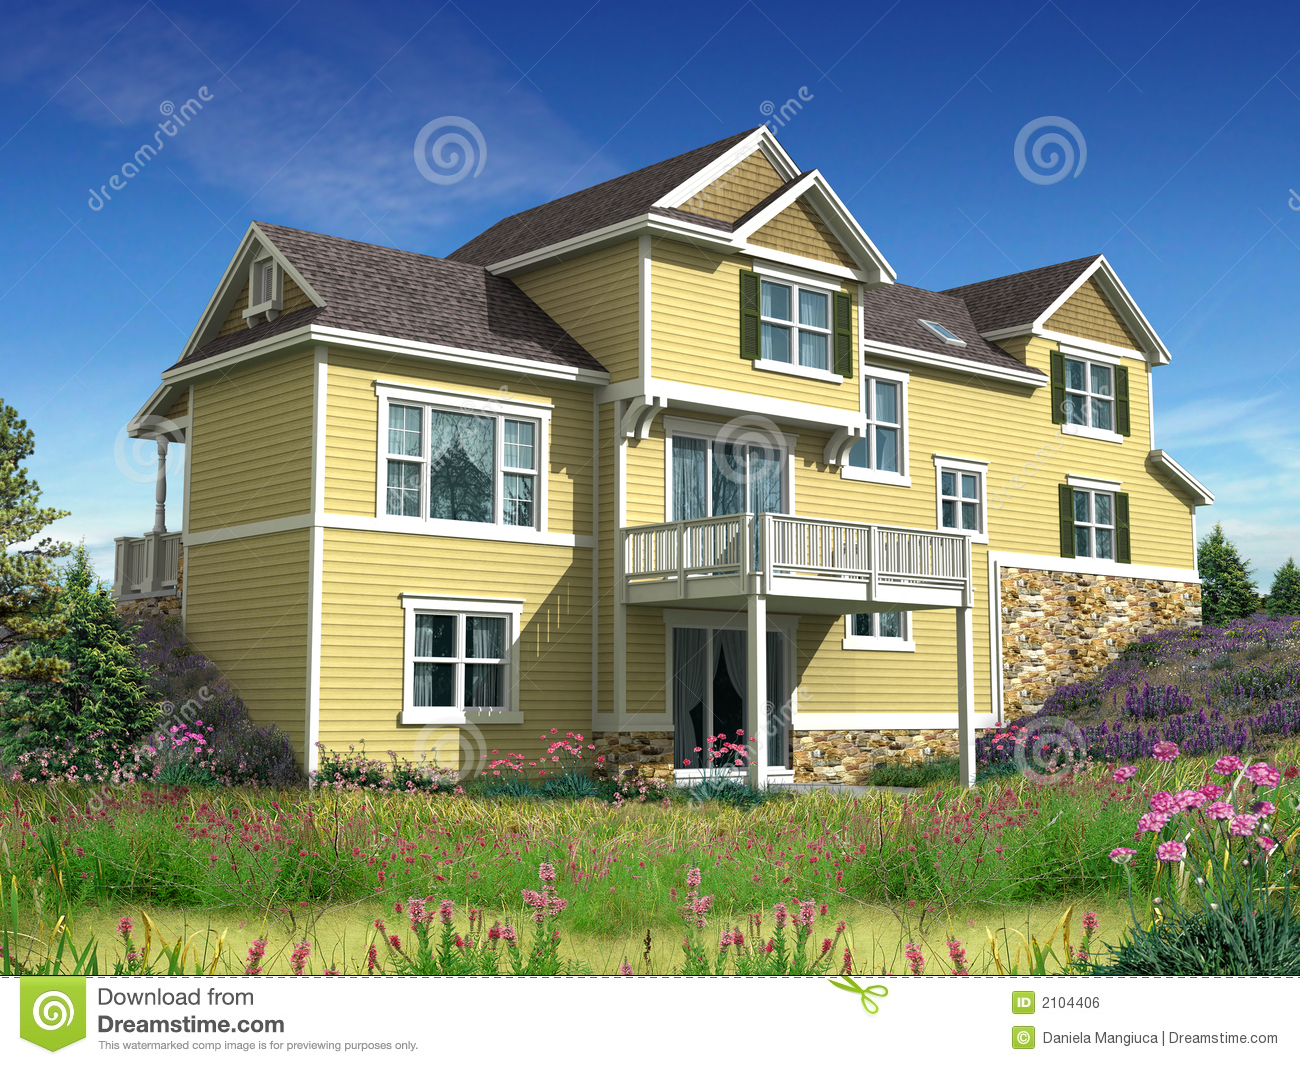 3d model of two level house stock illustration for Free 3d house models